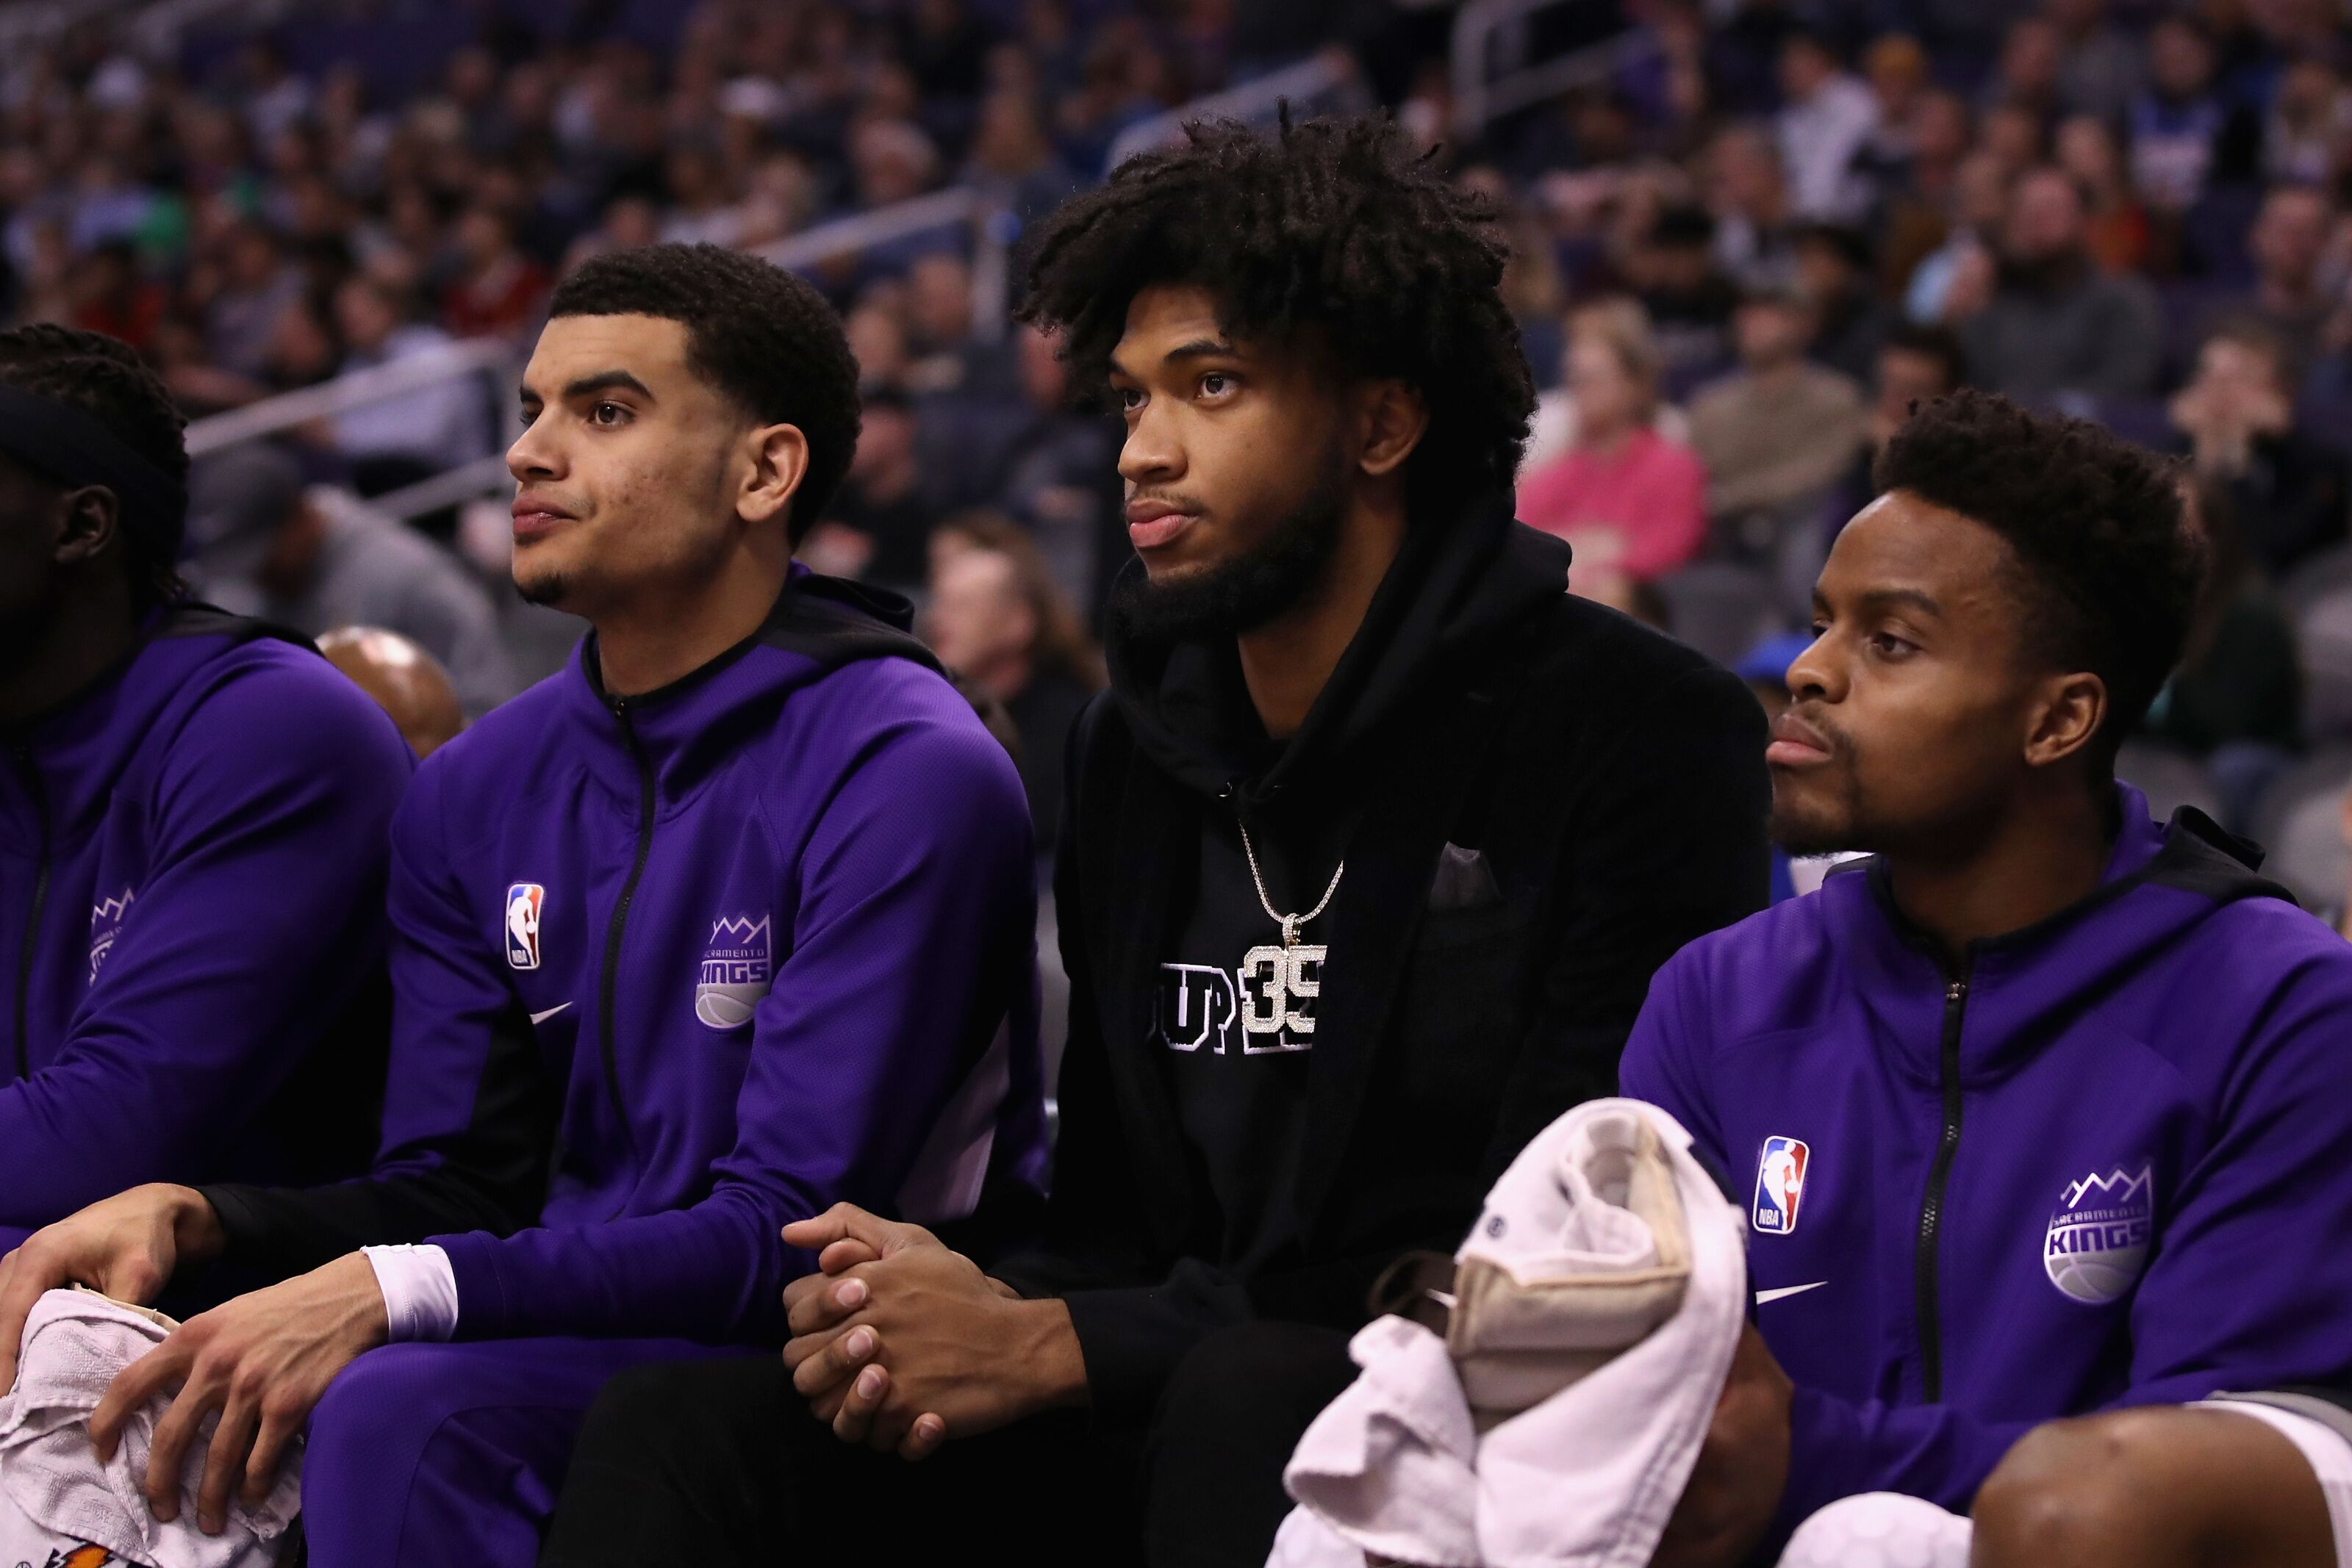 Sacramento Kings: Marvin Bagley's comments promise bright future